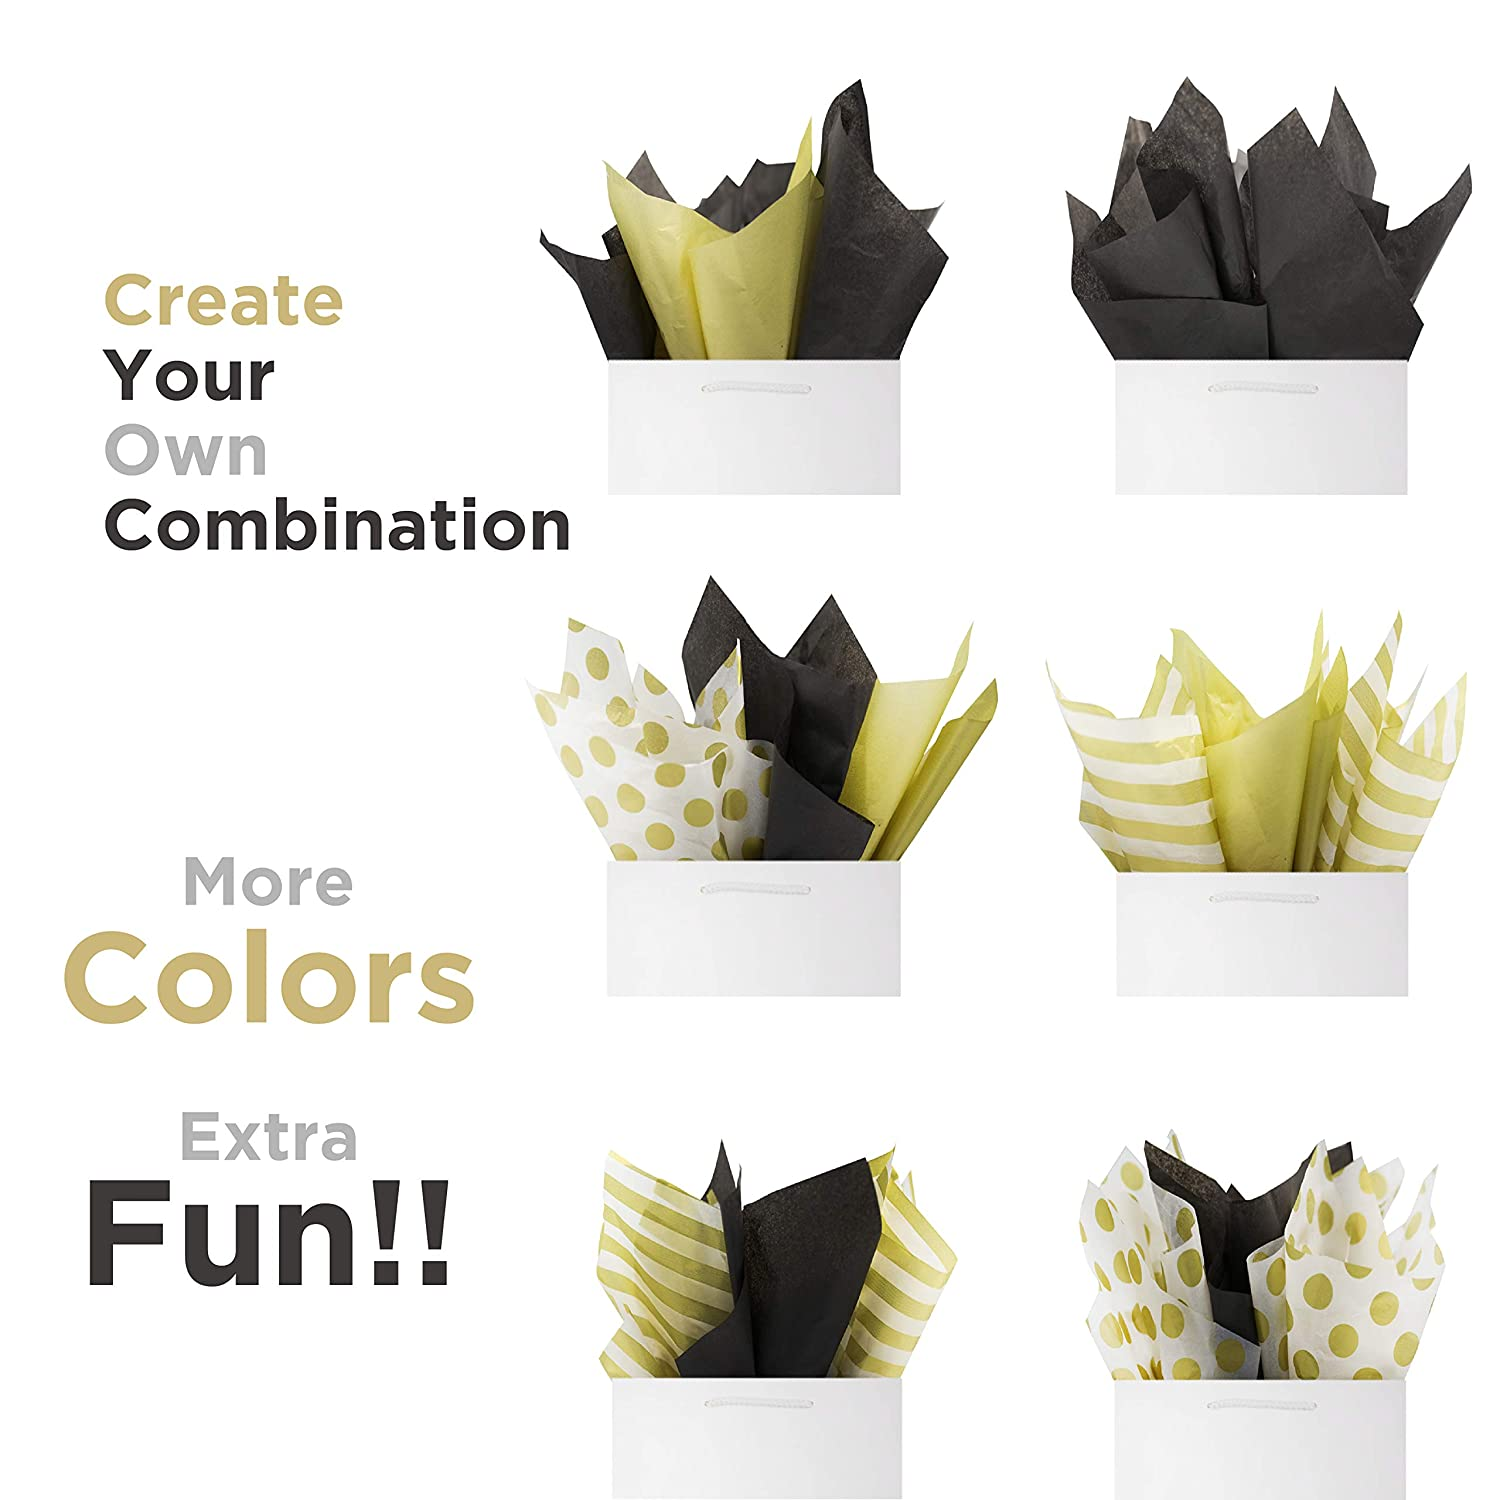 Black Tissue Paper 60 Sheets Set Premium Quality Black and Metallic Gold,Perfect for Art Craft Decoration Baby Shower by BllalaLab Birthday Wedding